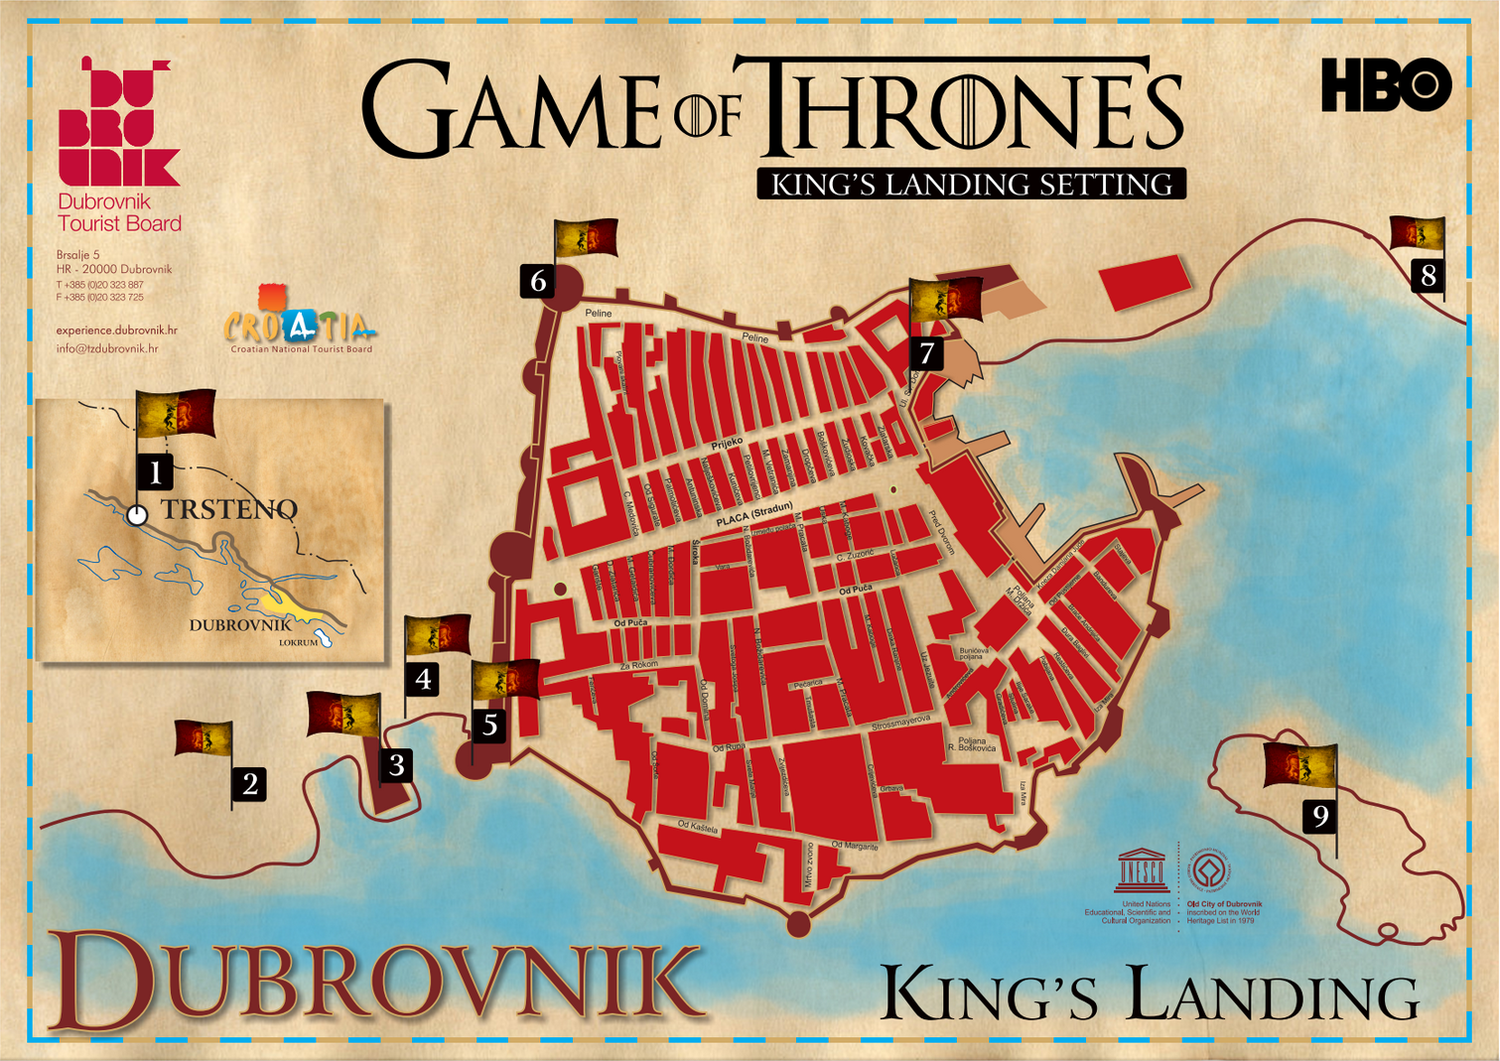 Dubrovnik Finishes Preparation For Game Of Thrones Filming